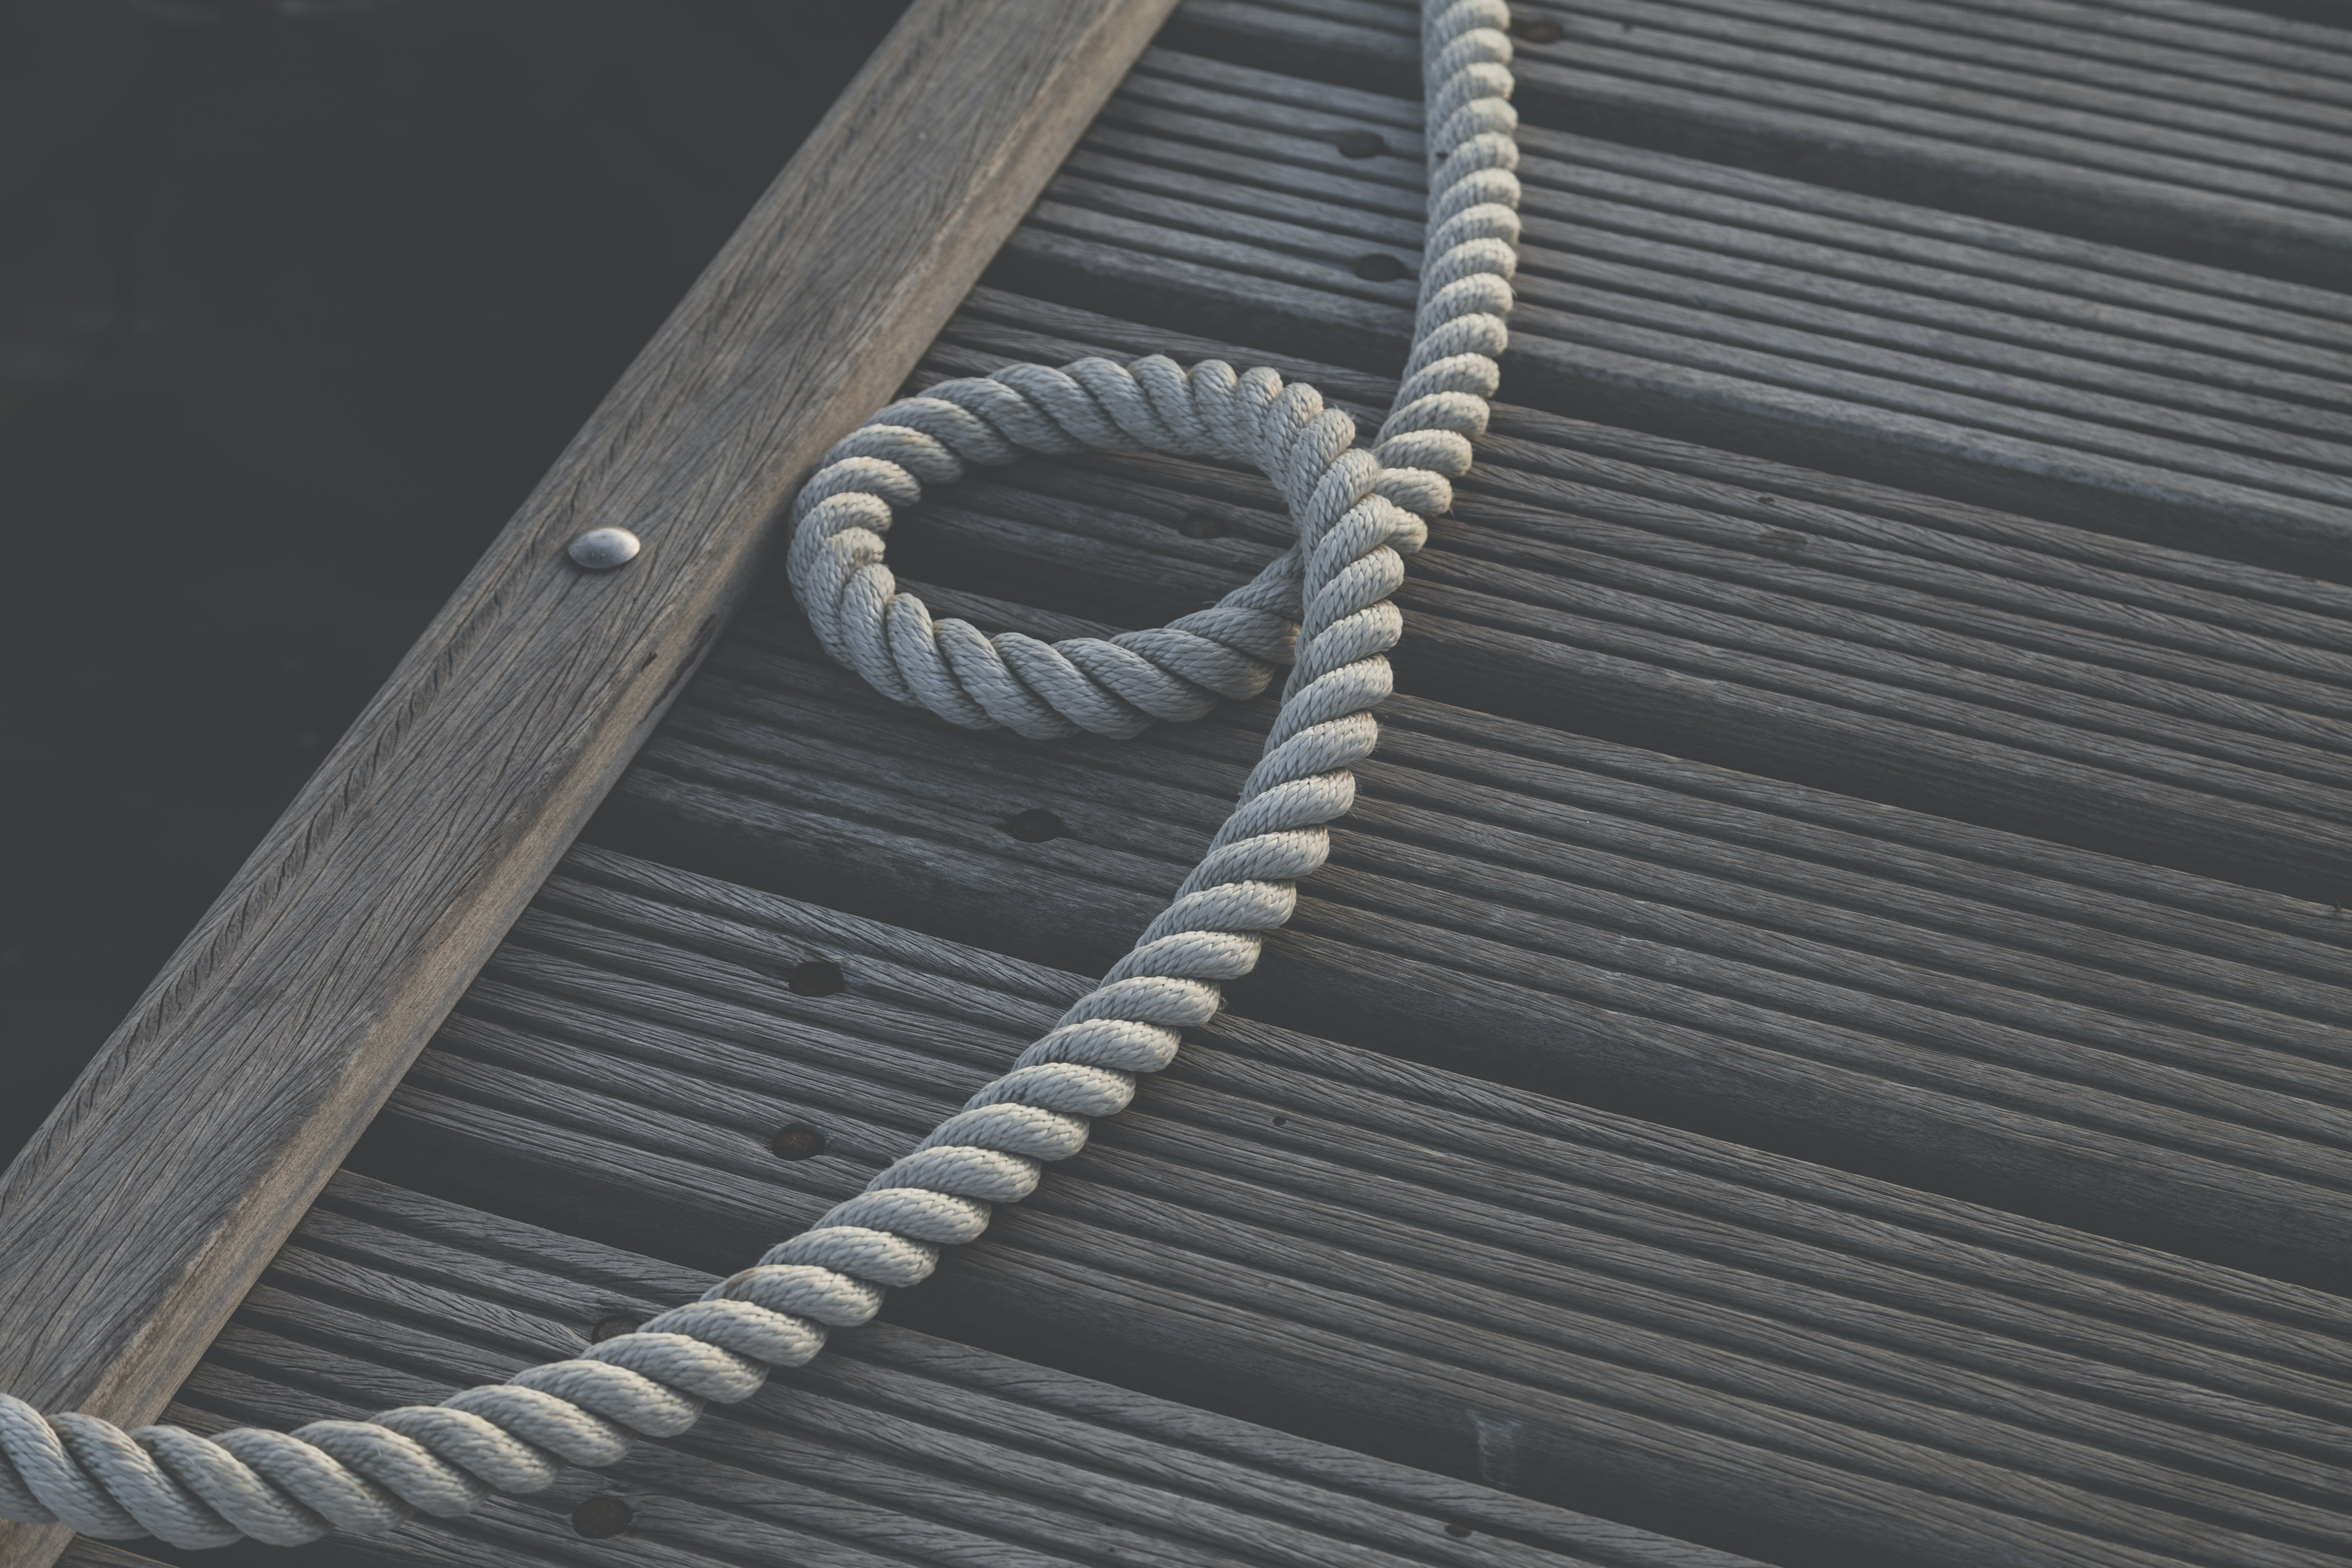 Rope on Wooden Dock